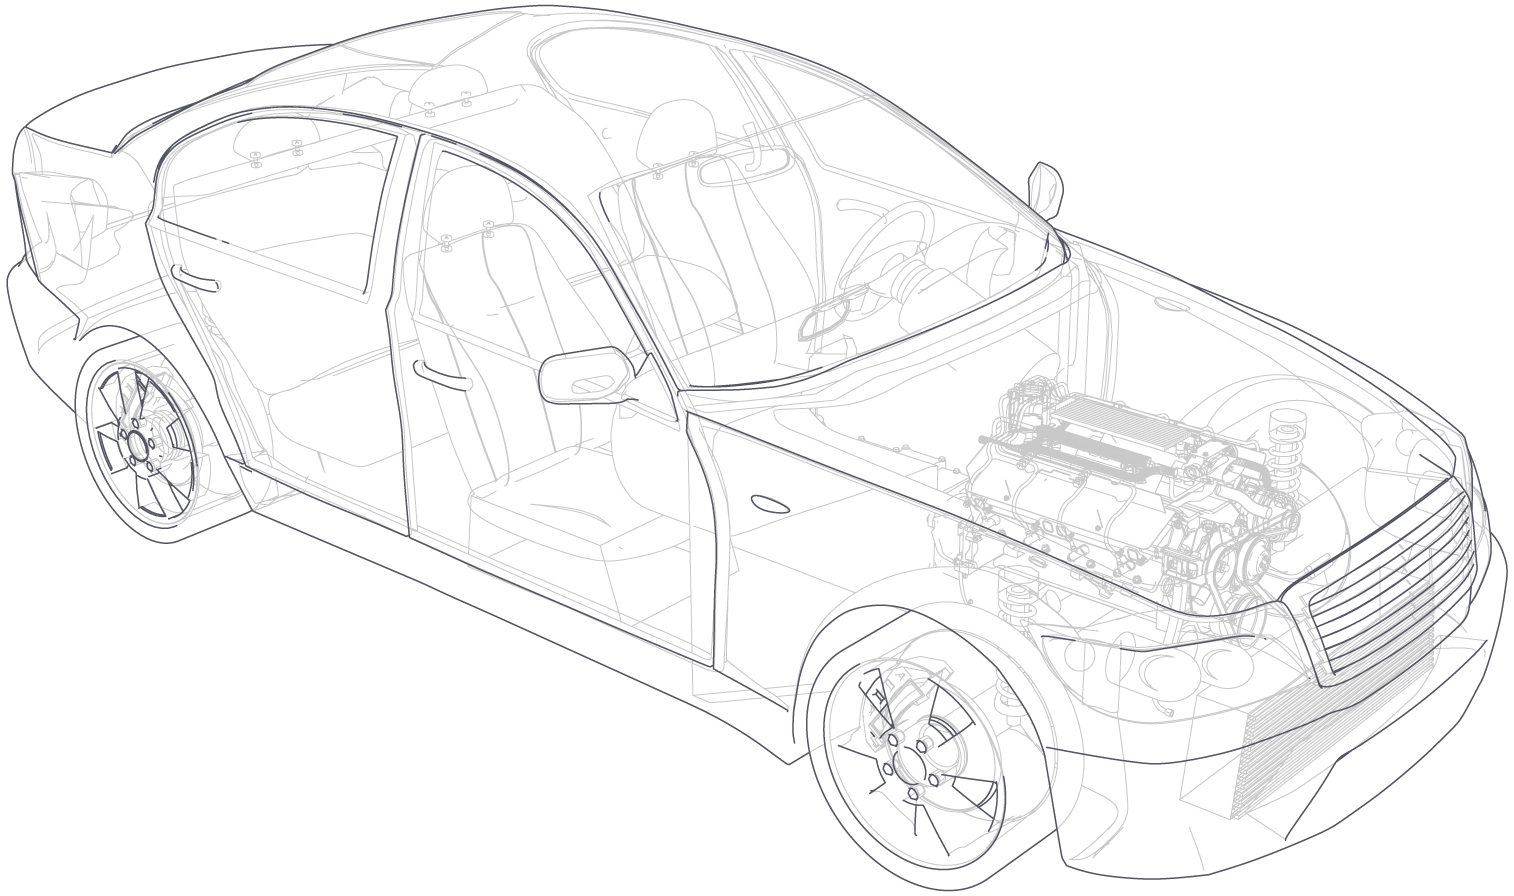 MAIN AREAS PARTS ARE USED